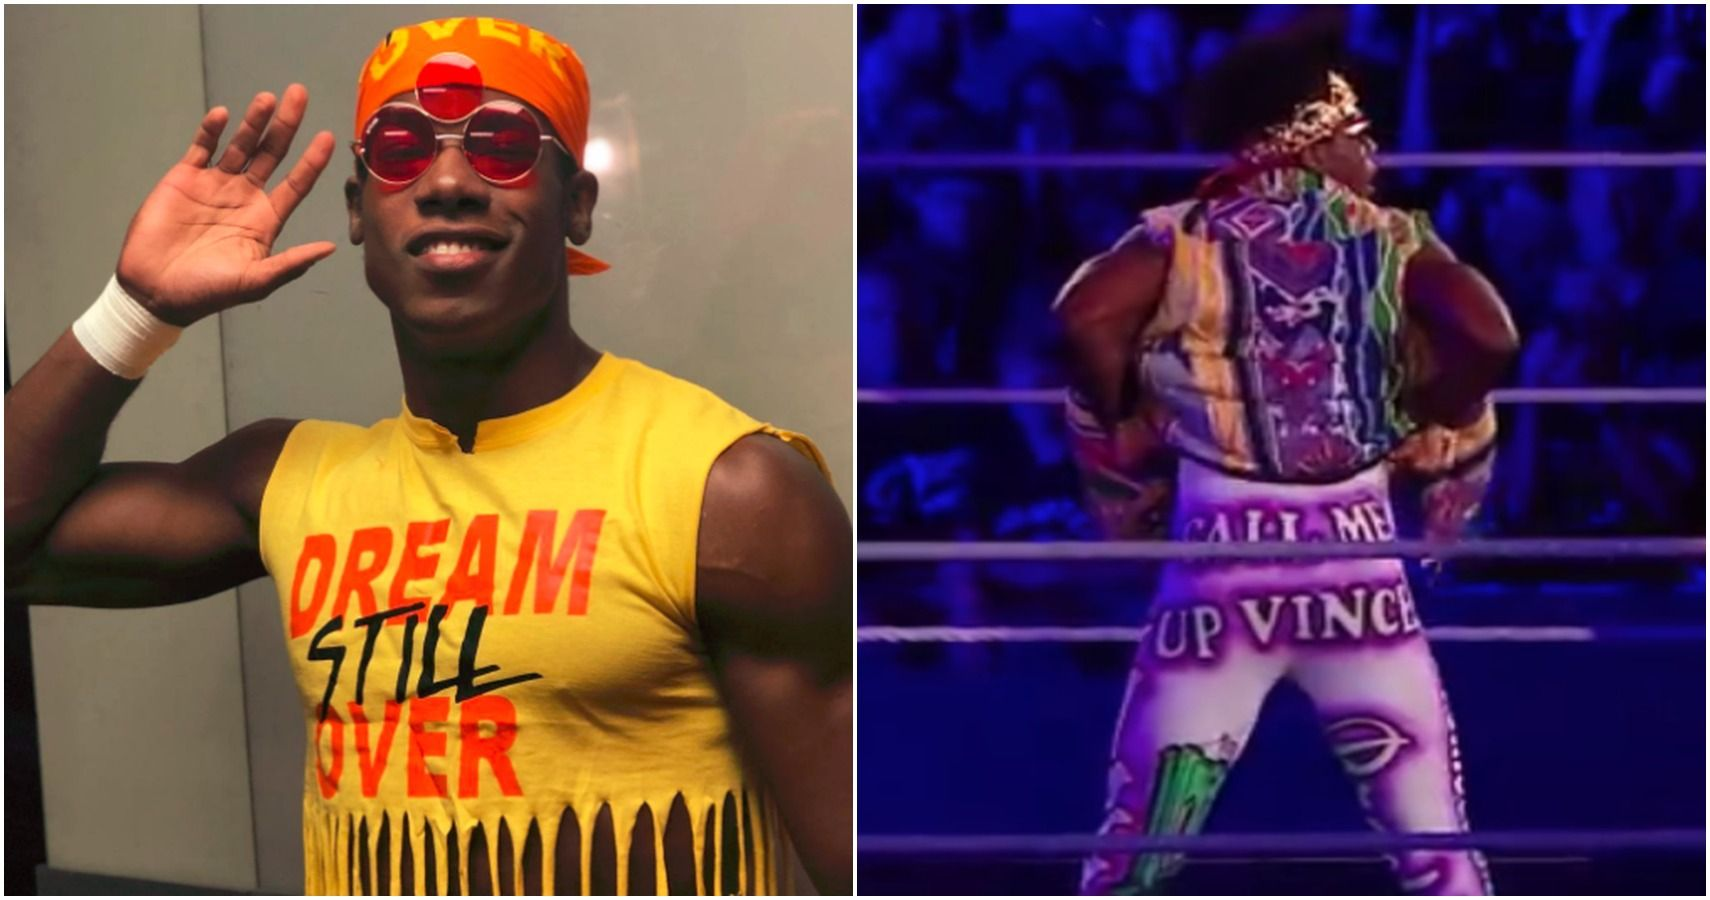 Velveteen Dream's Troubled WWE Career And Release, Explained